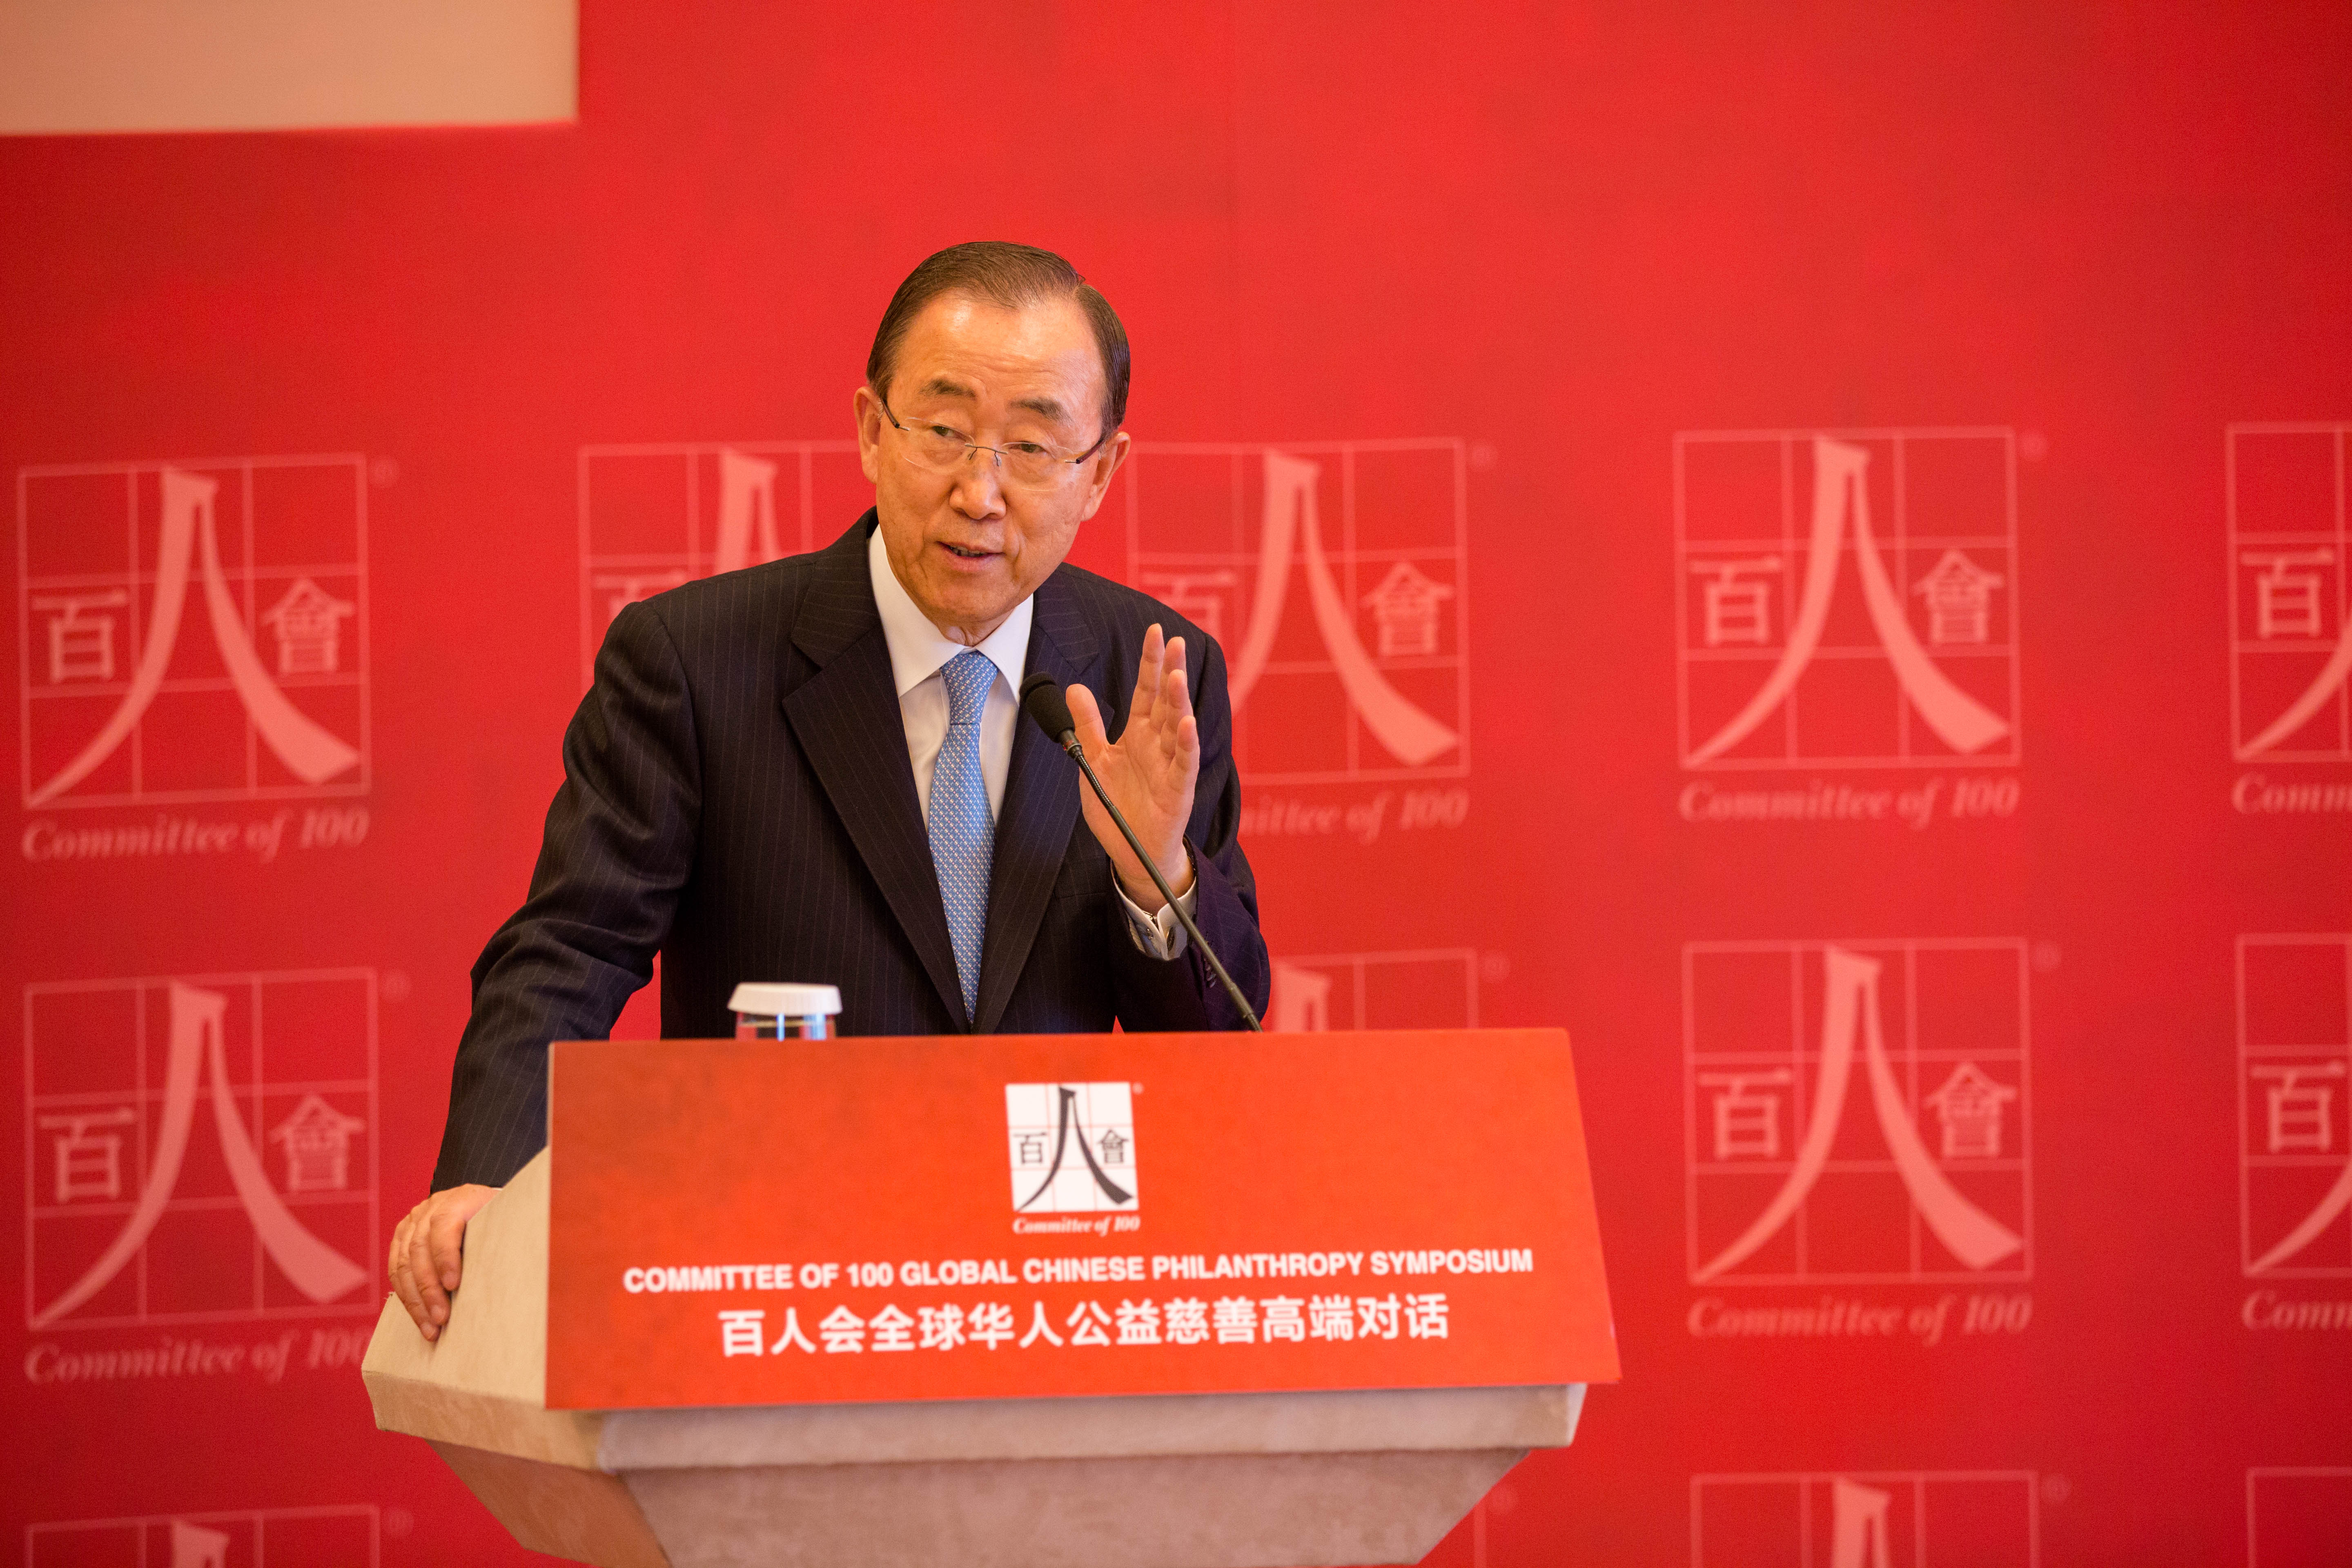 photos ban ki moon keynotes committee of global chinese 01 bkm money shot sm6a0554